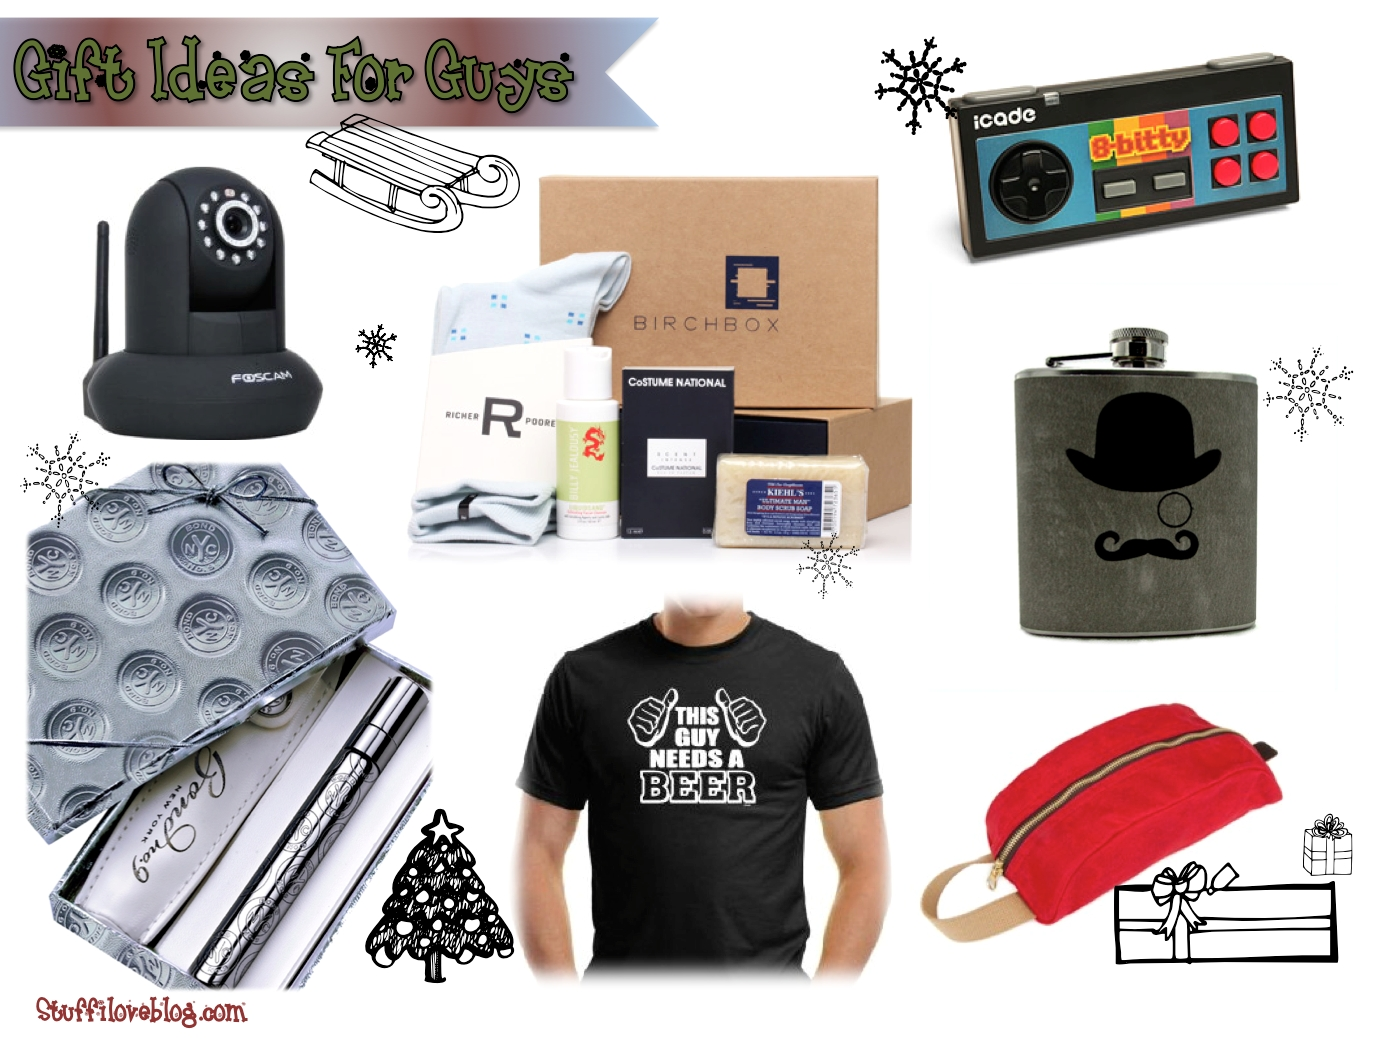 10 Amazing Great Gift Ideas For Guys gift ideas for guys stuff i love blog shop 2 2020